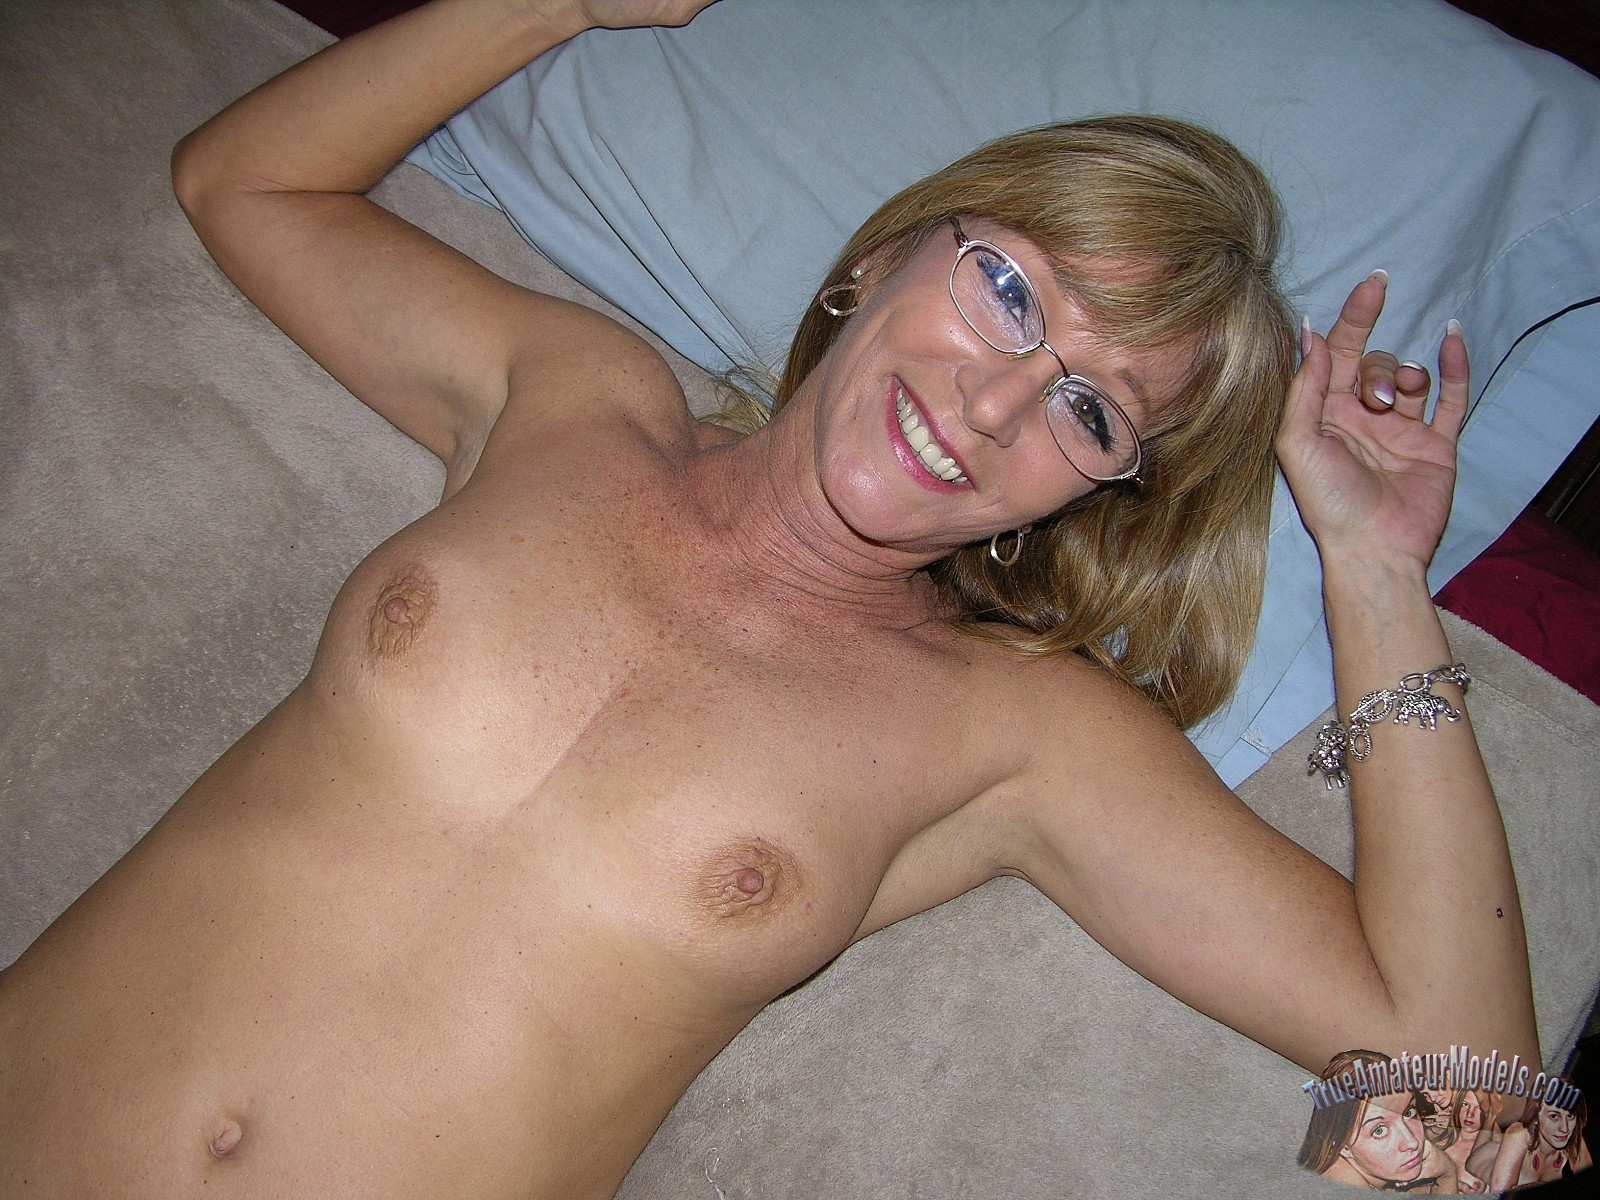 Hot amatuer milf cumshot video